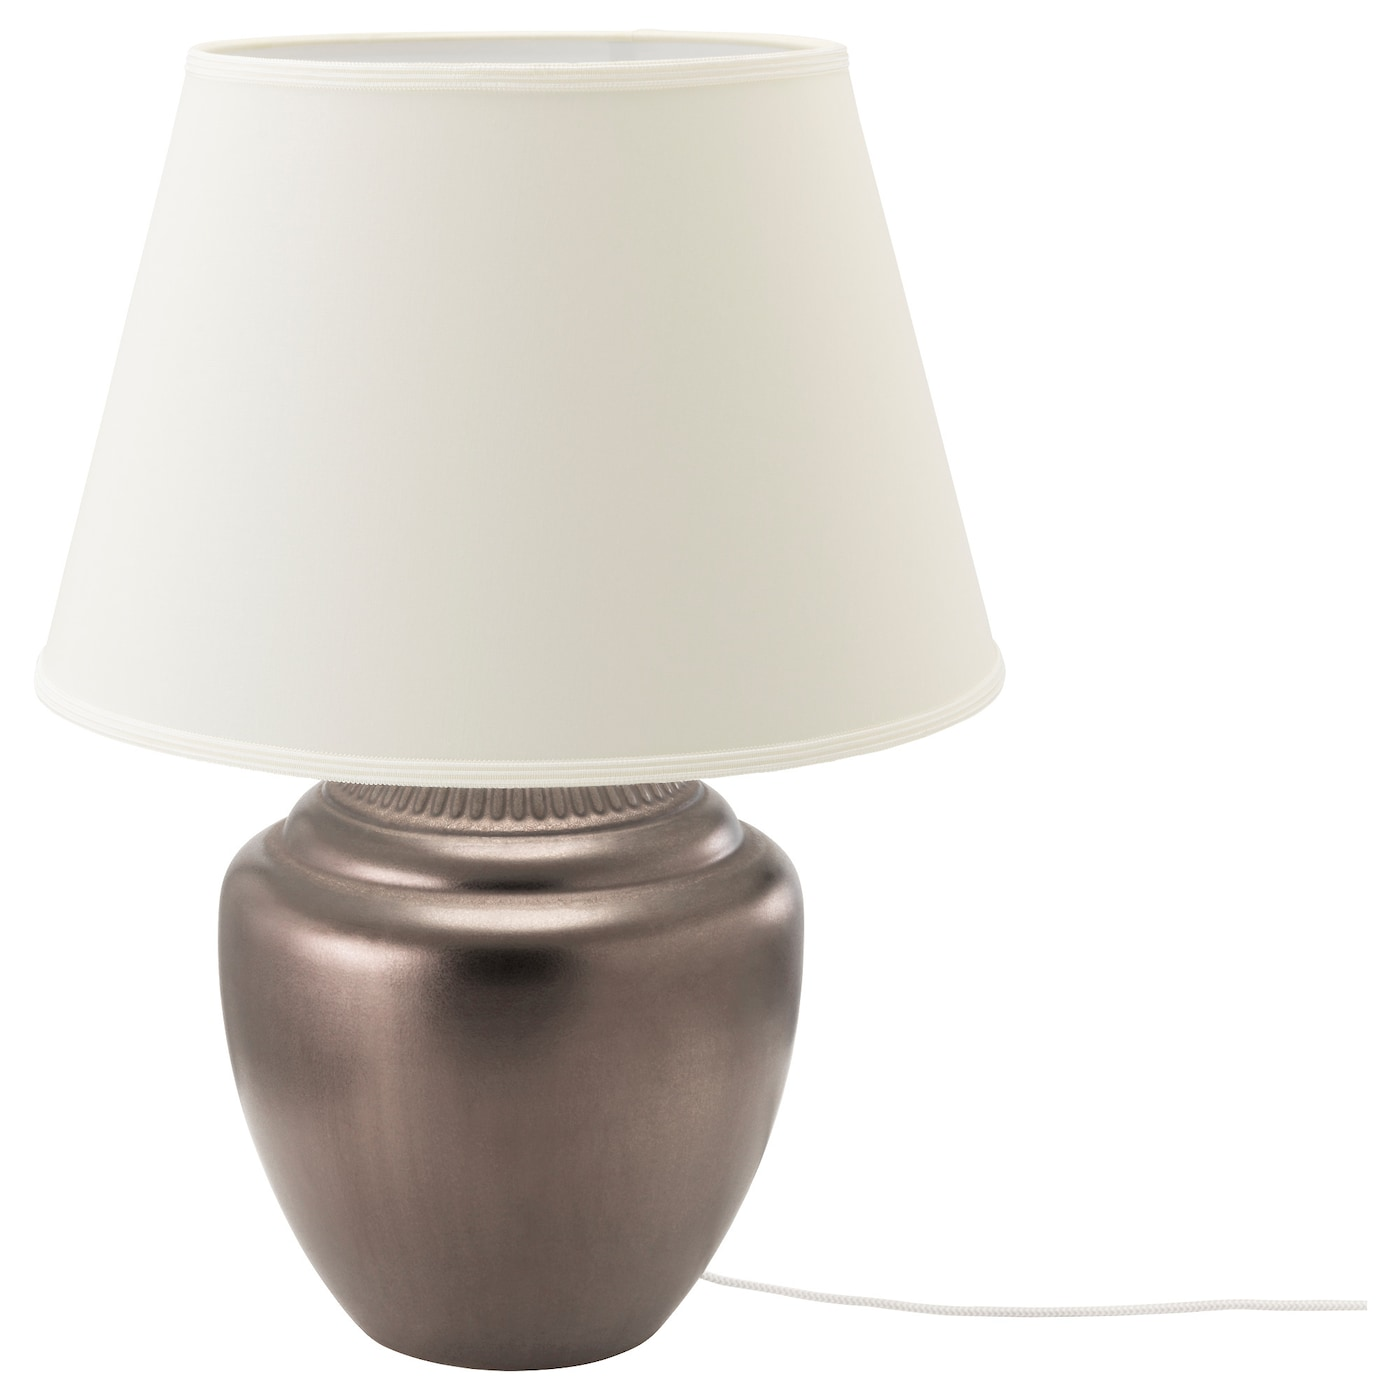 IKEA RICKARUM table lamp Creates a soft, cosy mood light in your room.